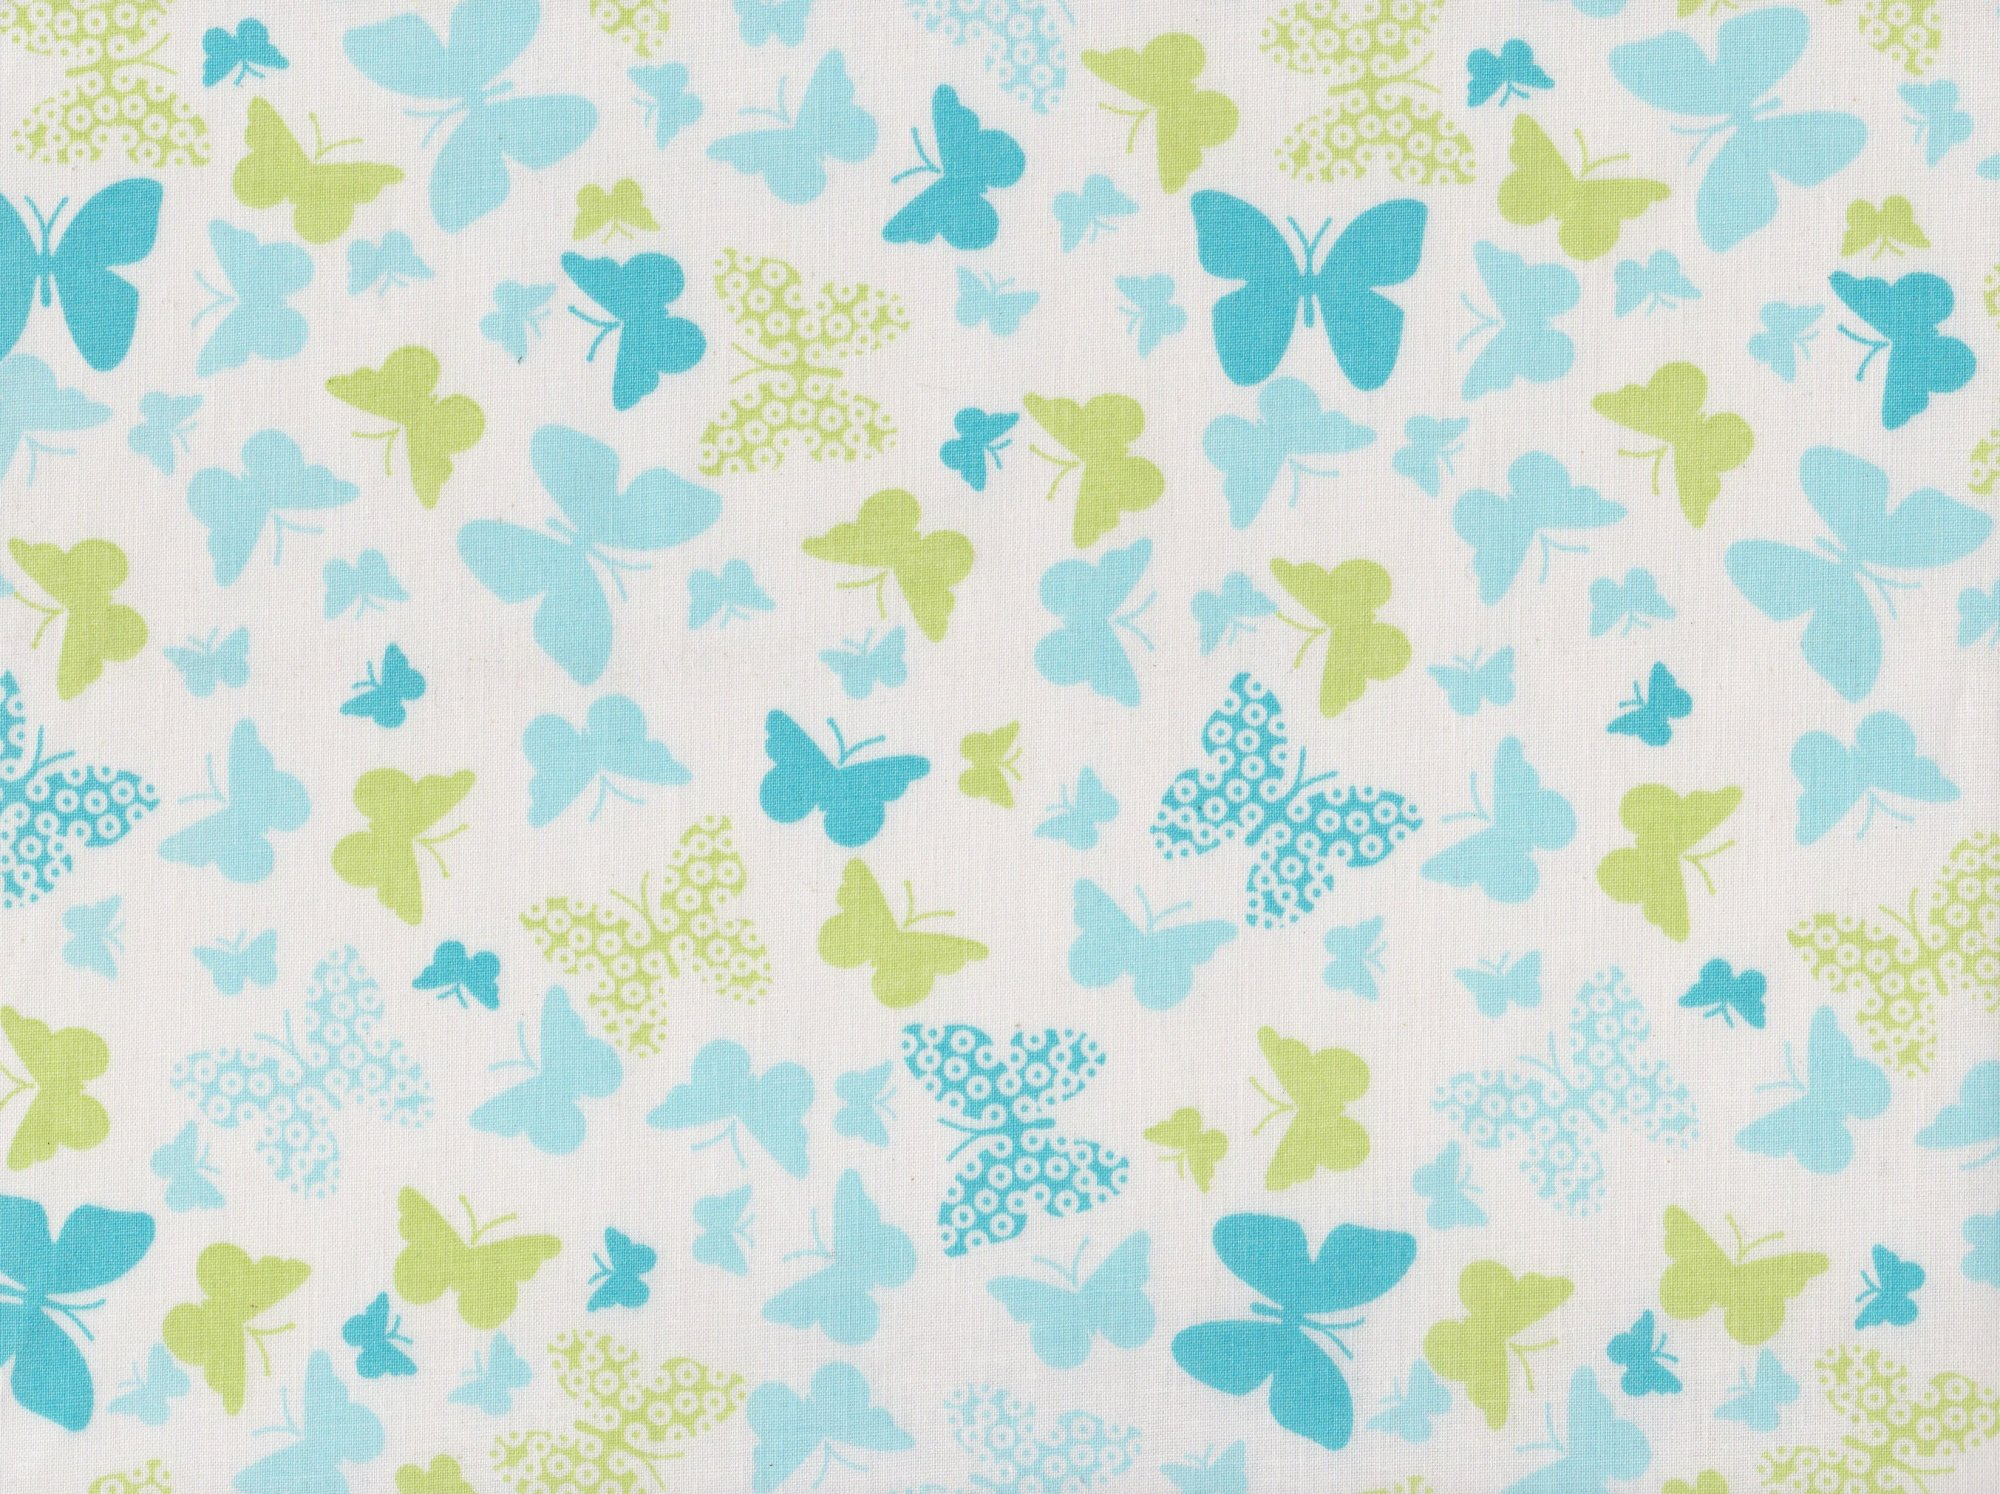 PROMO* FT-Novelty Prints - Turquoise Butterflies